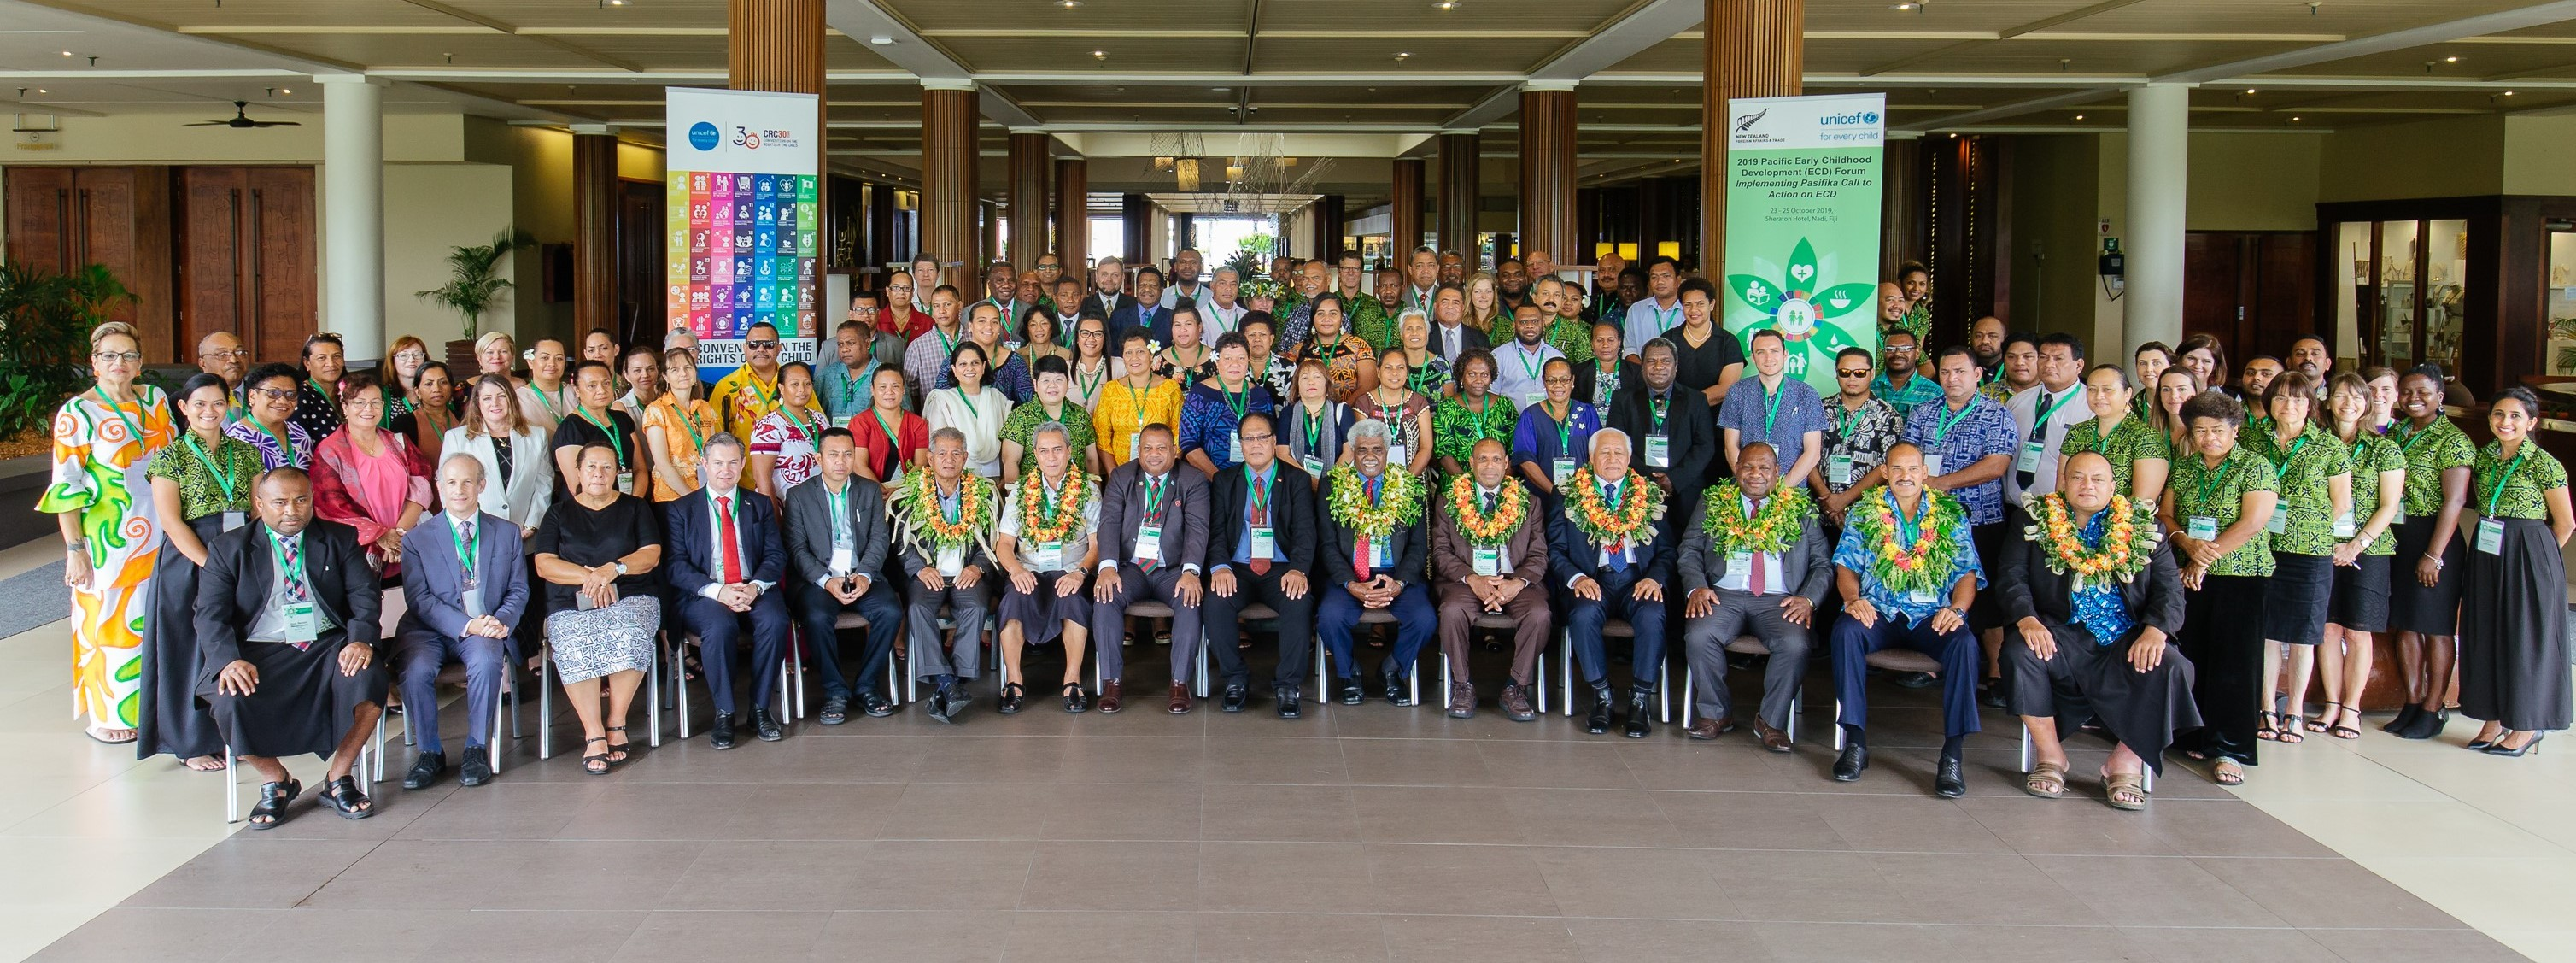 Delegates attending the 2019 Pacific Early Childhood Development Forum in Nadi, Fiji.